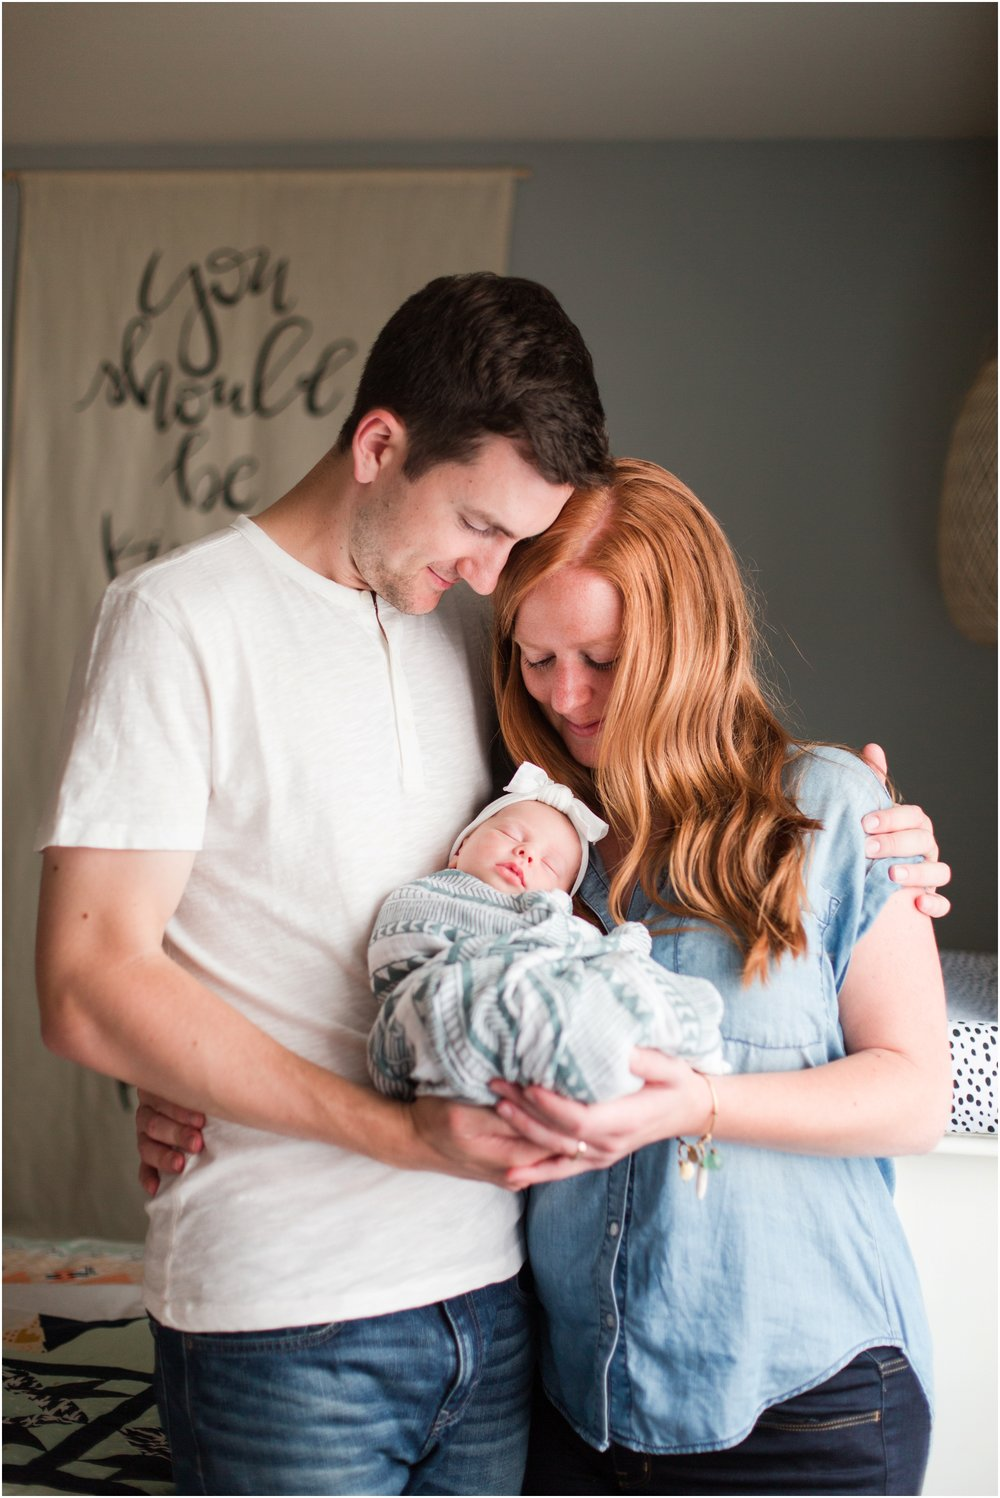 Seattle lifestyle newborn photos by Briana Calderon Photography based in the Greater Seattle & Tacoma, WA_0722.jpg